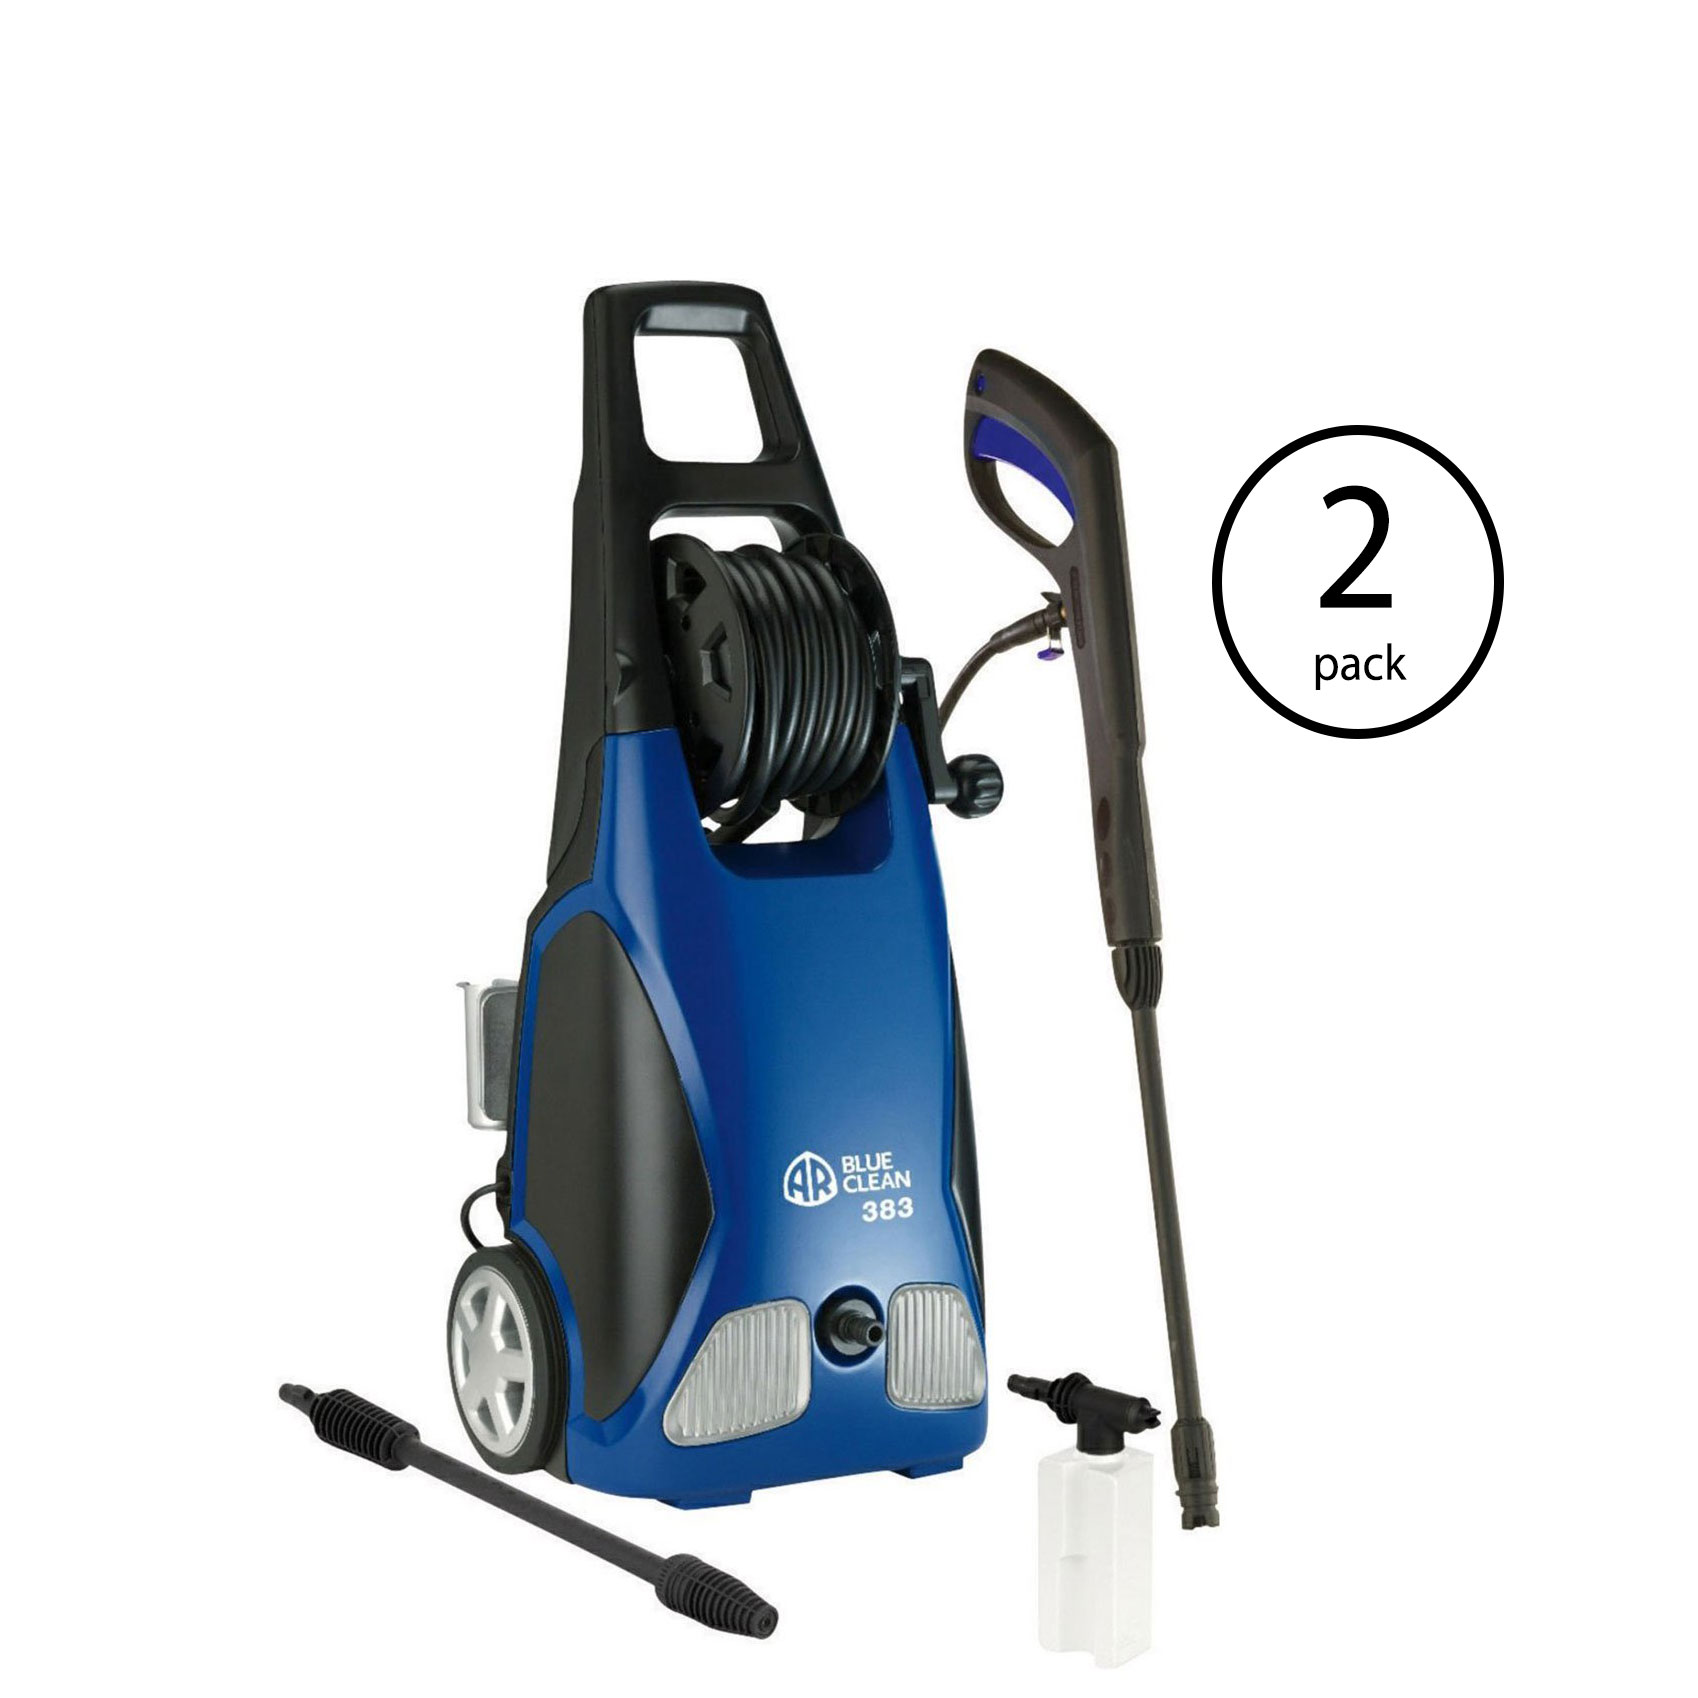 AR Blue Clean 1900 PSI 1.5 GPM Electric Pressure Washer with Spray Kit (2 Pack)